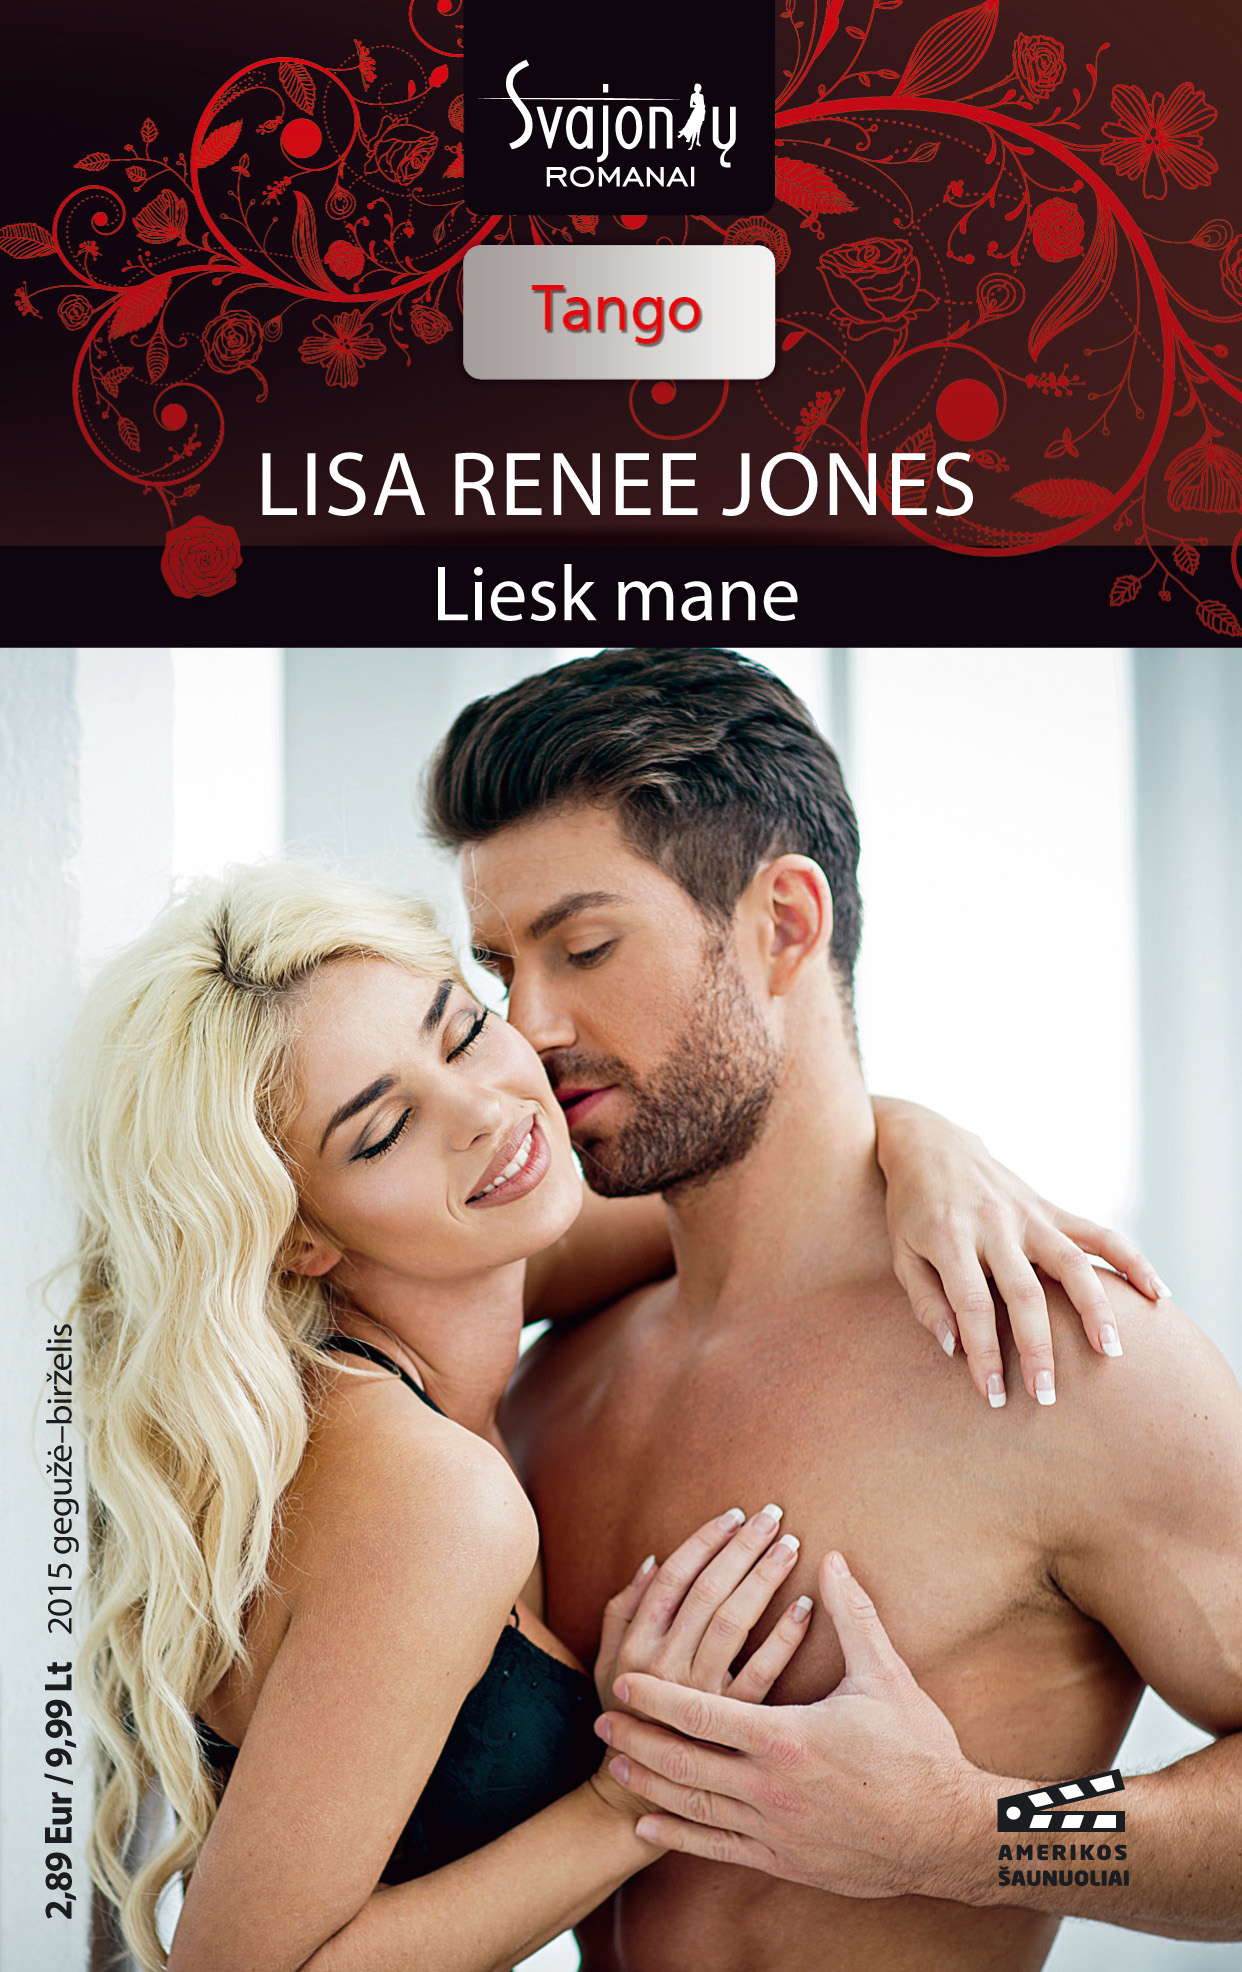 Lisa Renee Jones Liesk mane lisa renee jones liesk mane